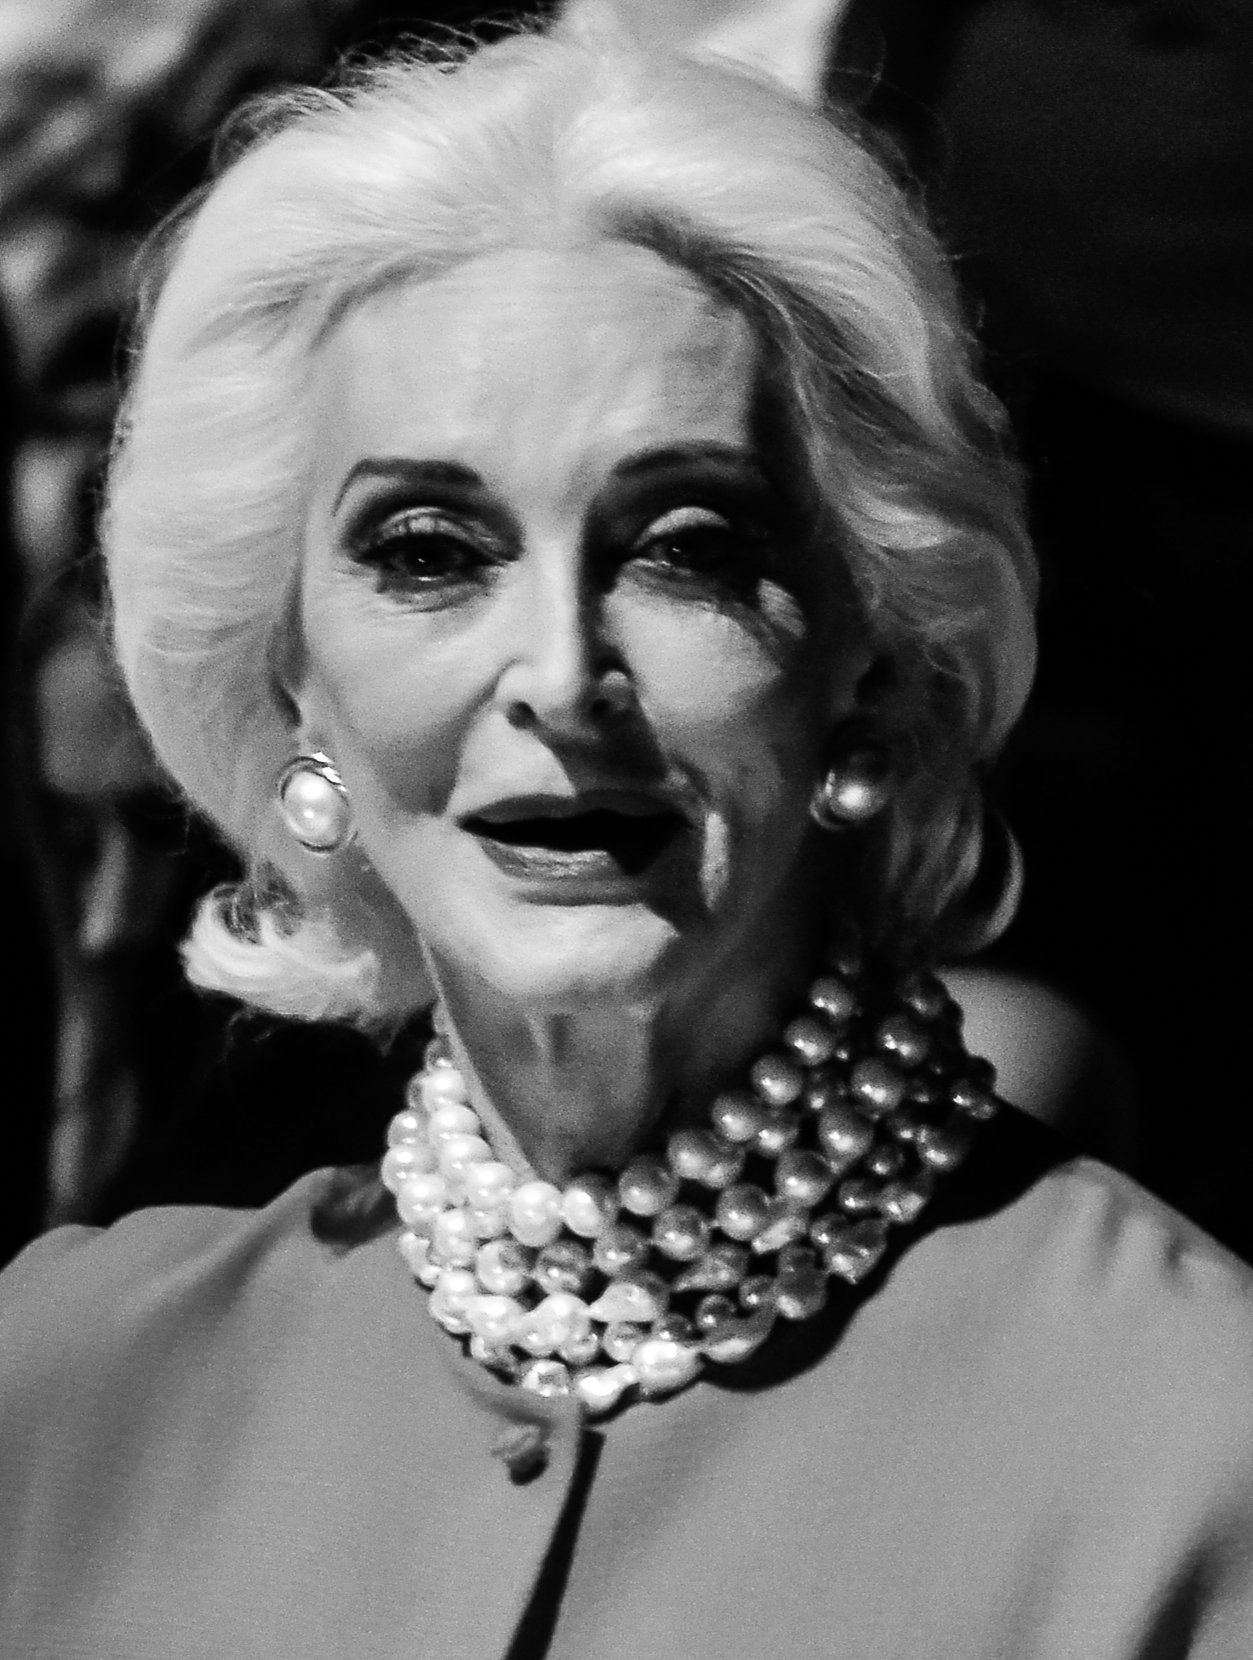 The 89-year old daughter of father (?) and mother(?) Carmen dell'Orefice in 2021 photo. Carmen dell'Orefice earned a  million dollar salary - leaving the net worth at  million in 2021